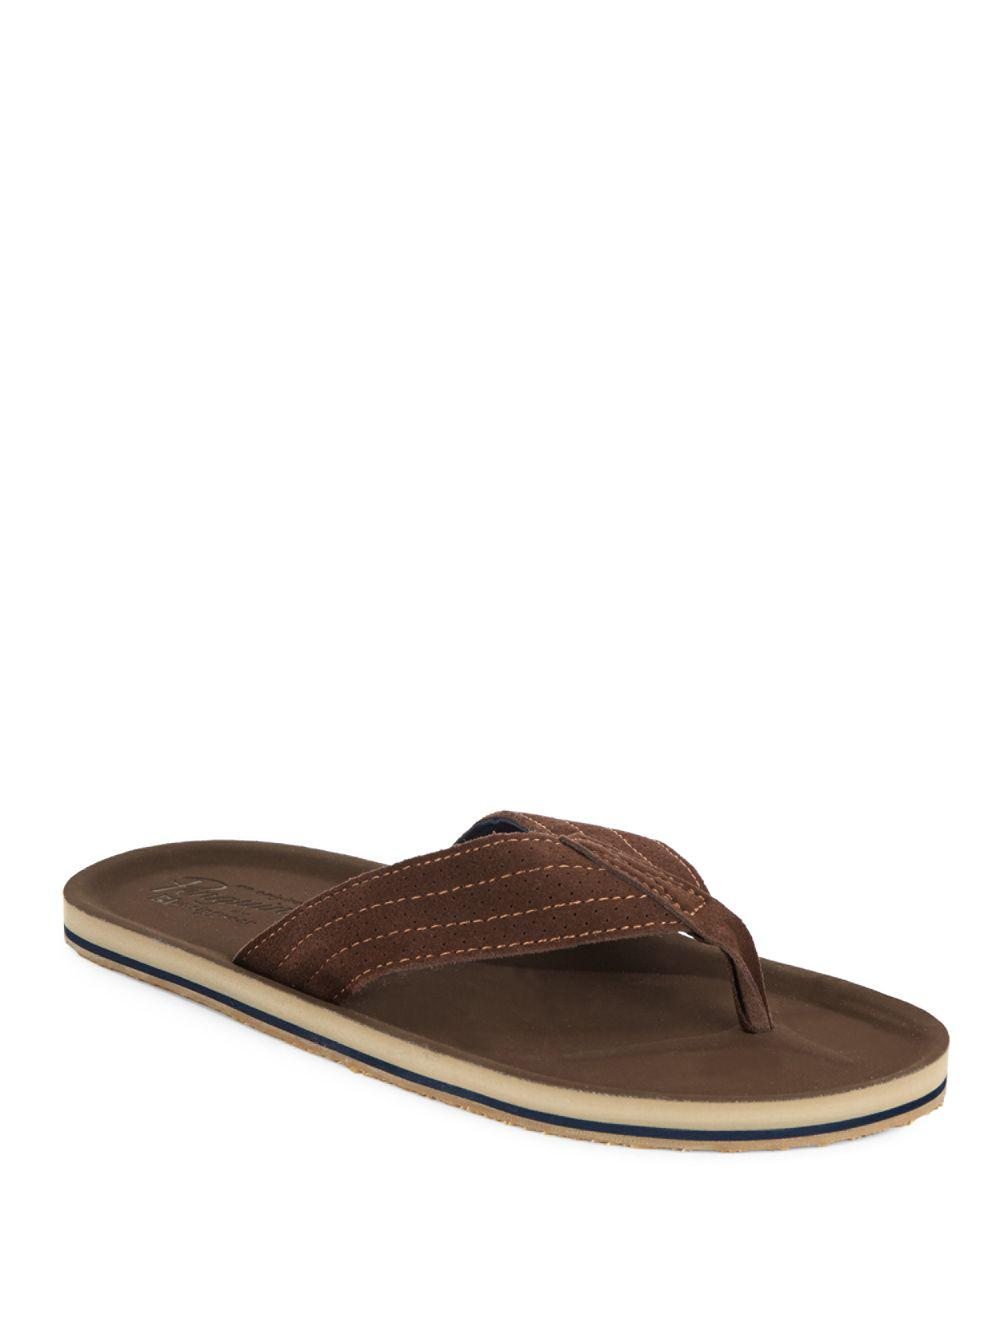 ed016eb20d9e Lyst - Original Penguin Brian Perforated Leather Sandals in Brown ...